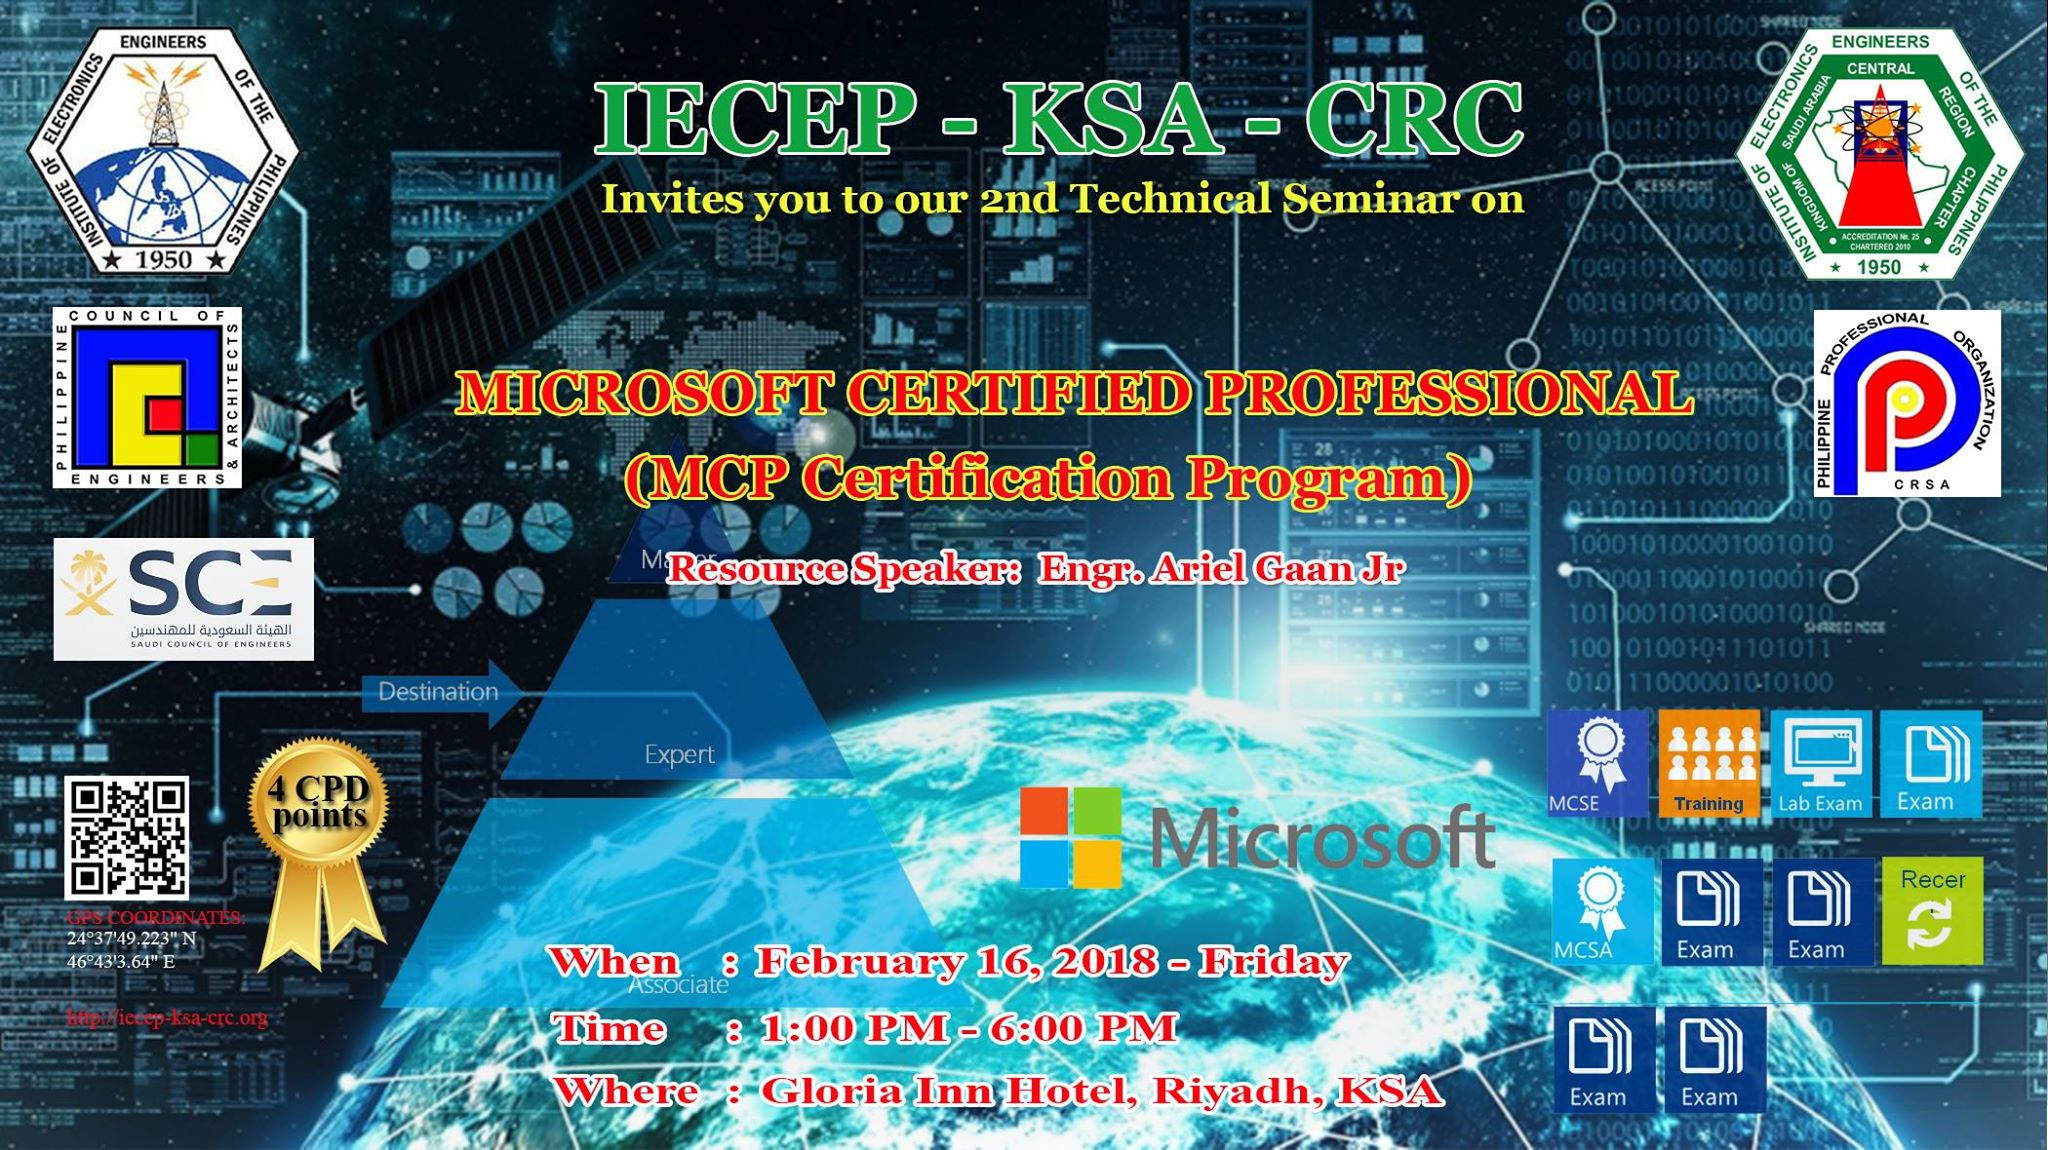 2nd Technical Seminar on Microsoft Certified Professional